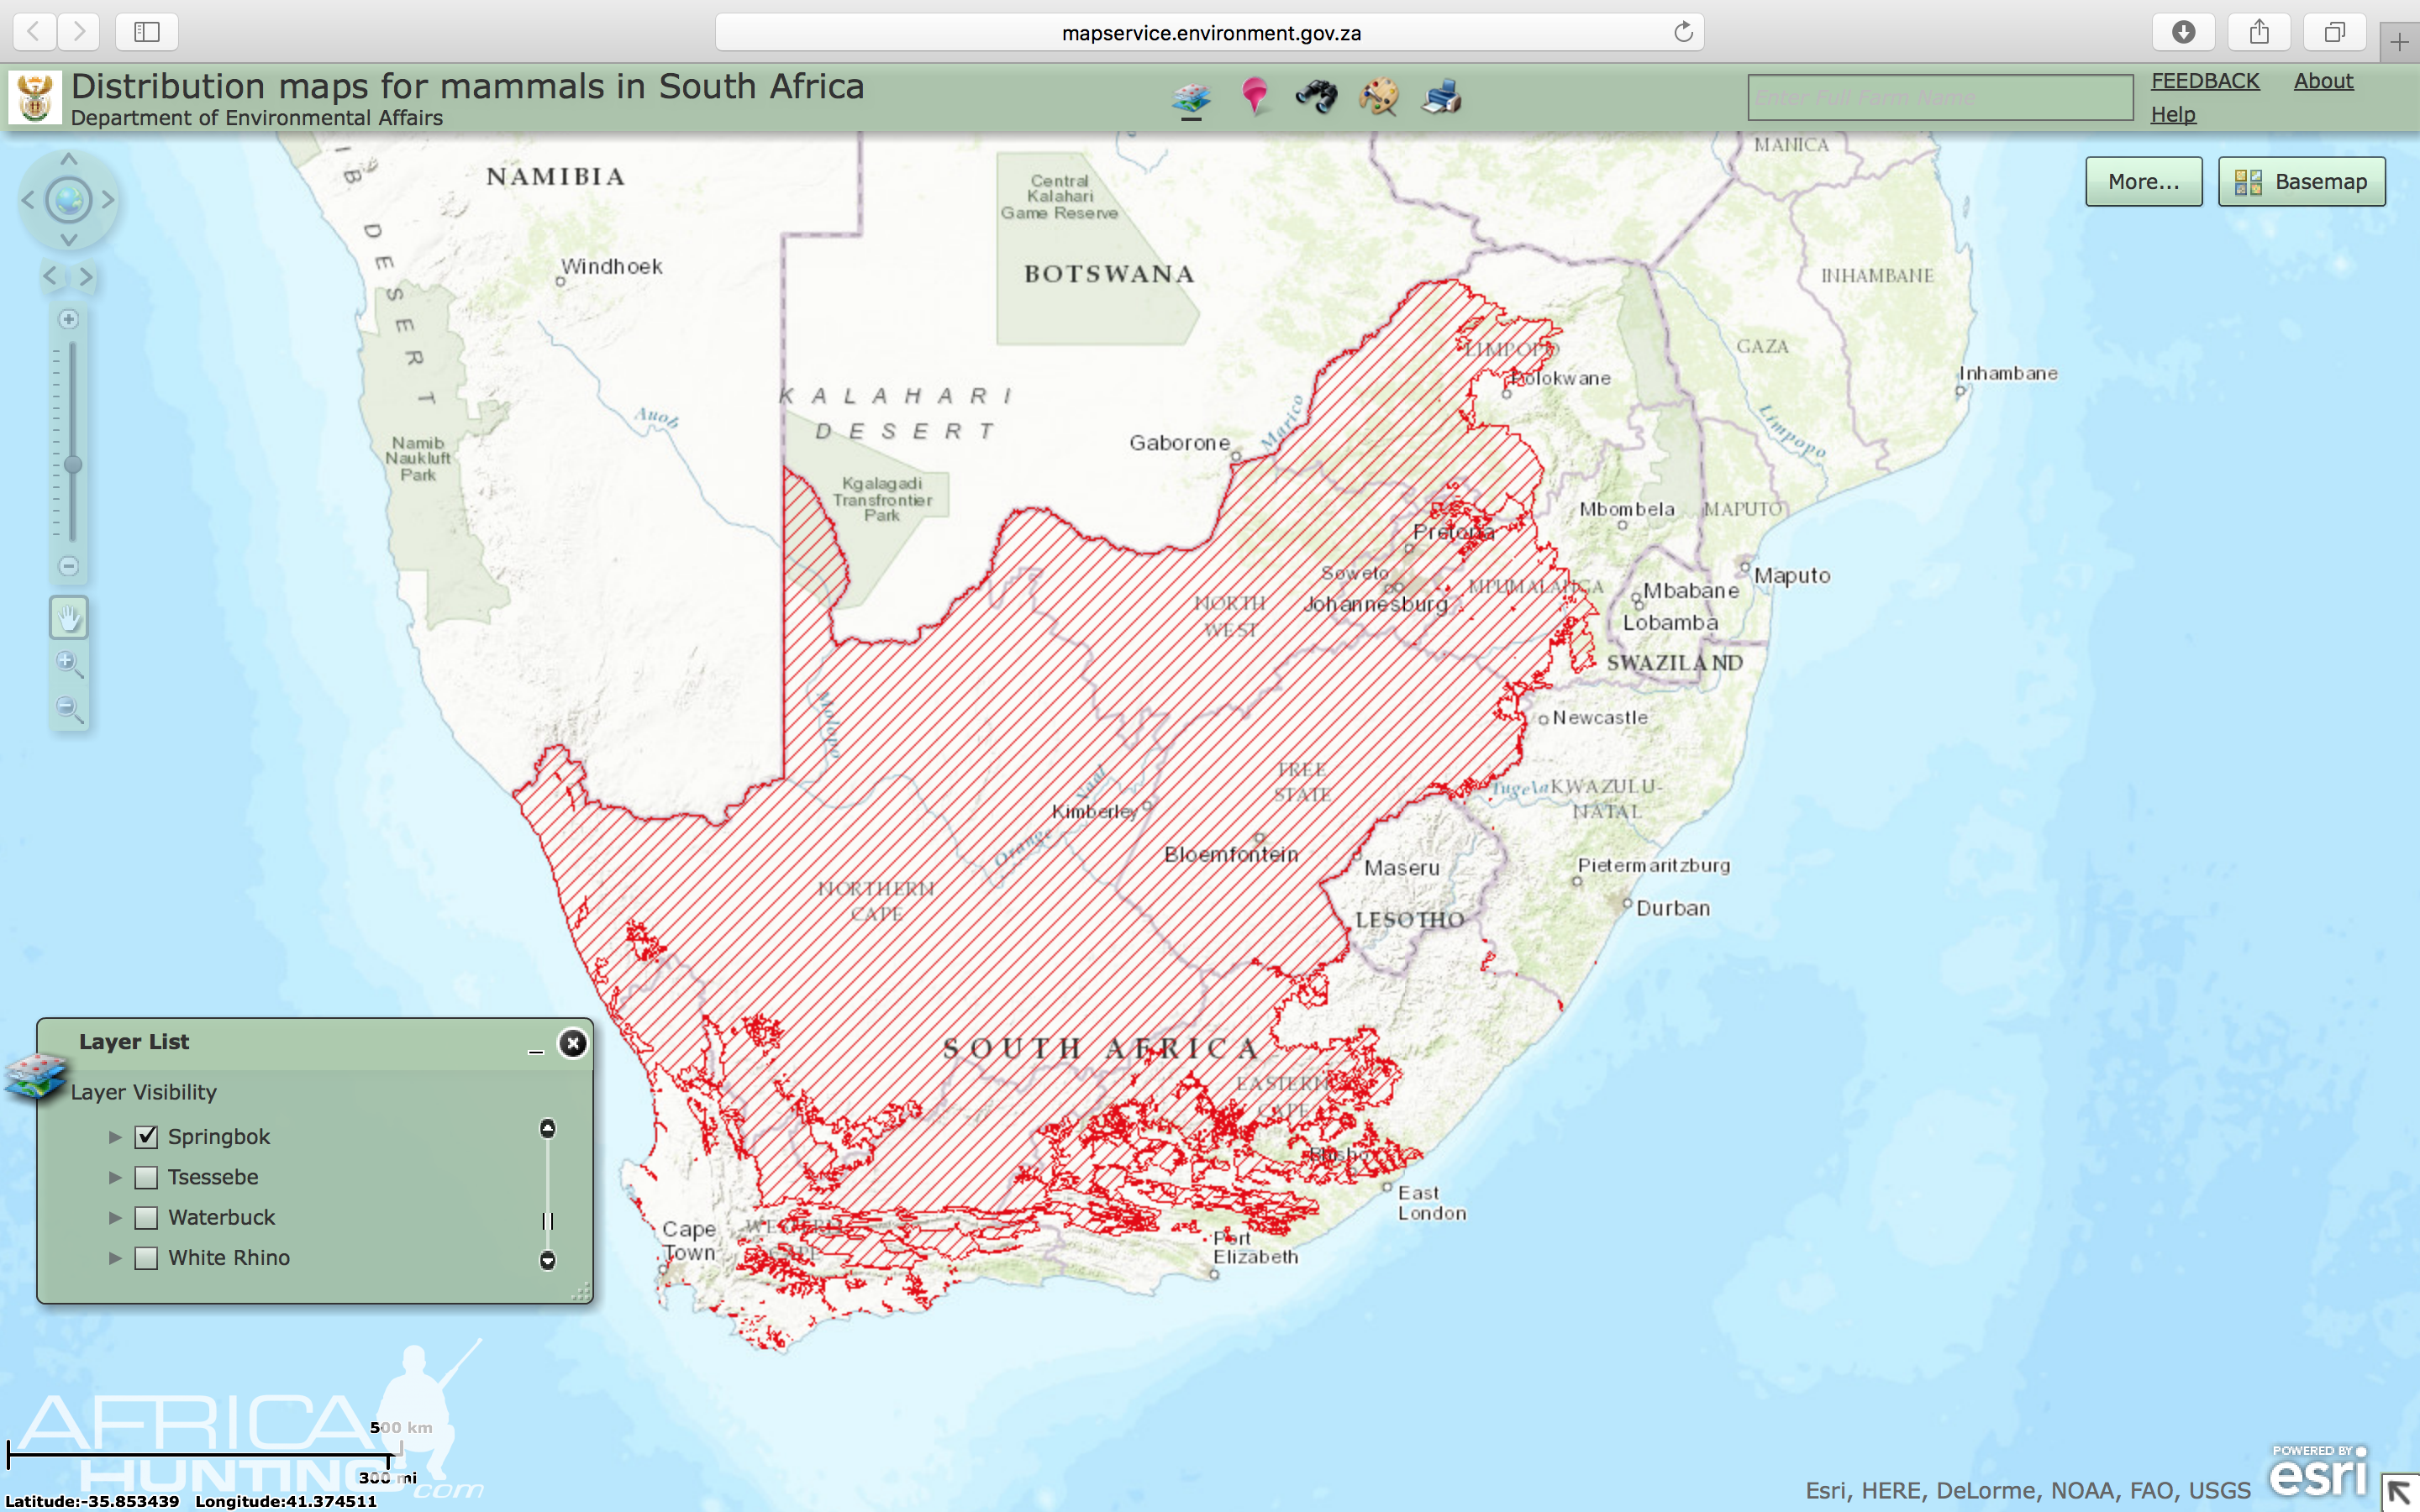 springbok-distribution-map-south-africa.png